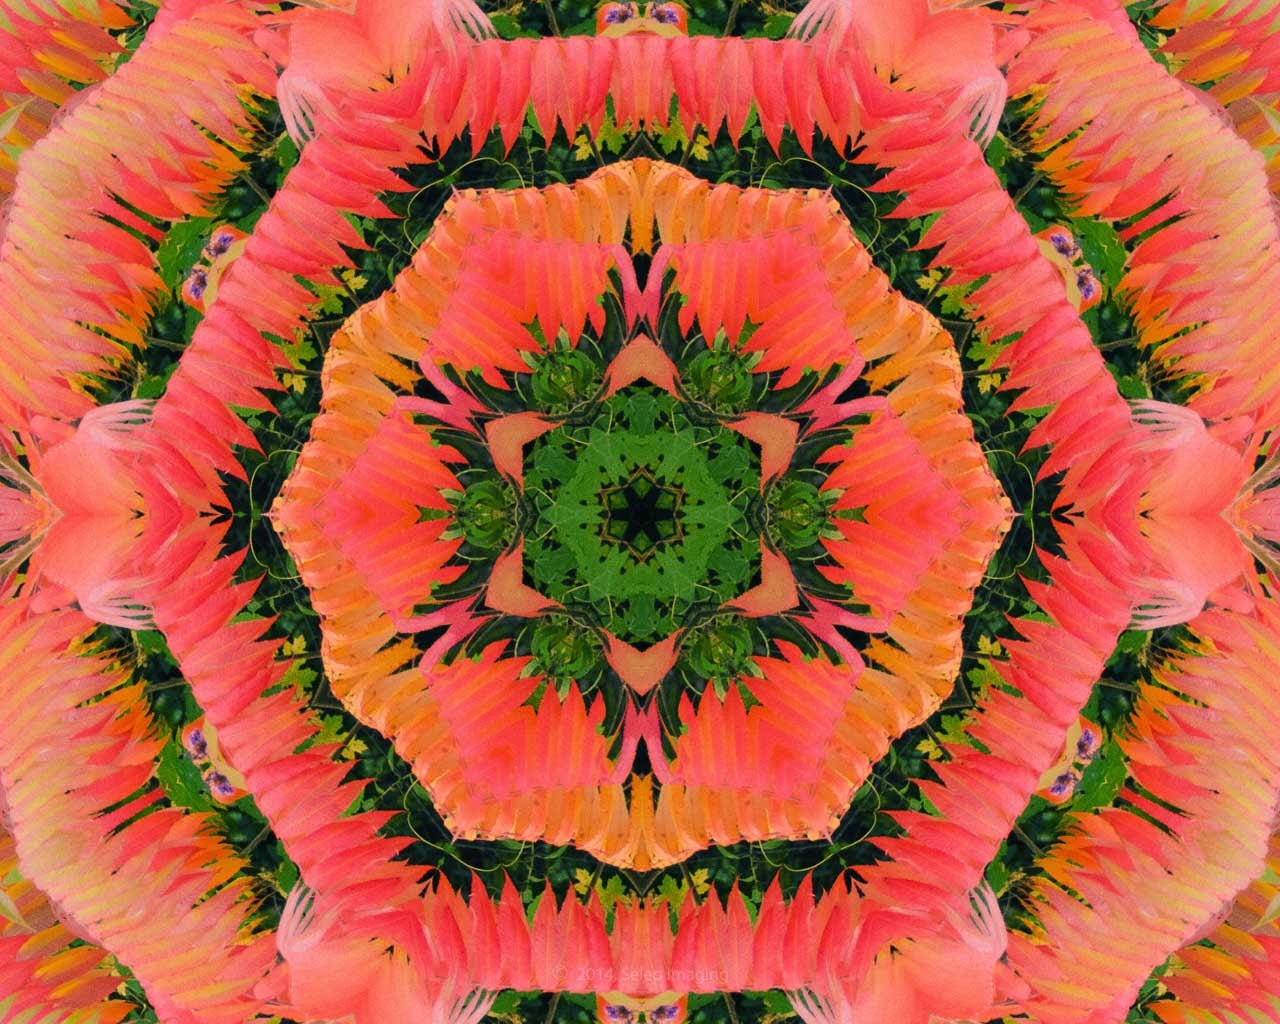 Kaleidoscope Photo Art Tulips by Jeanne Selep